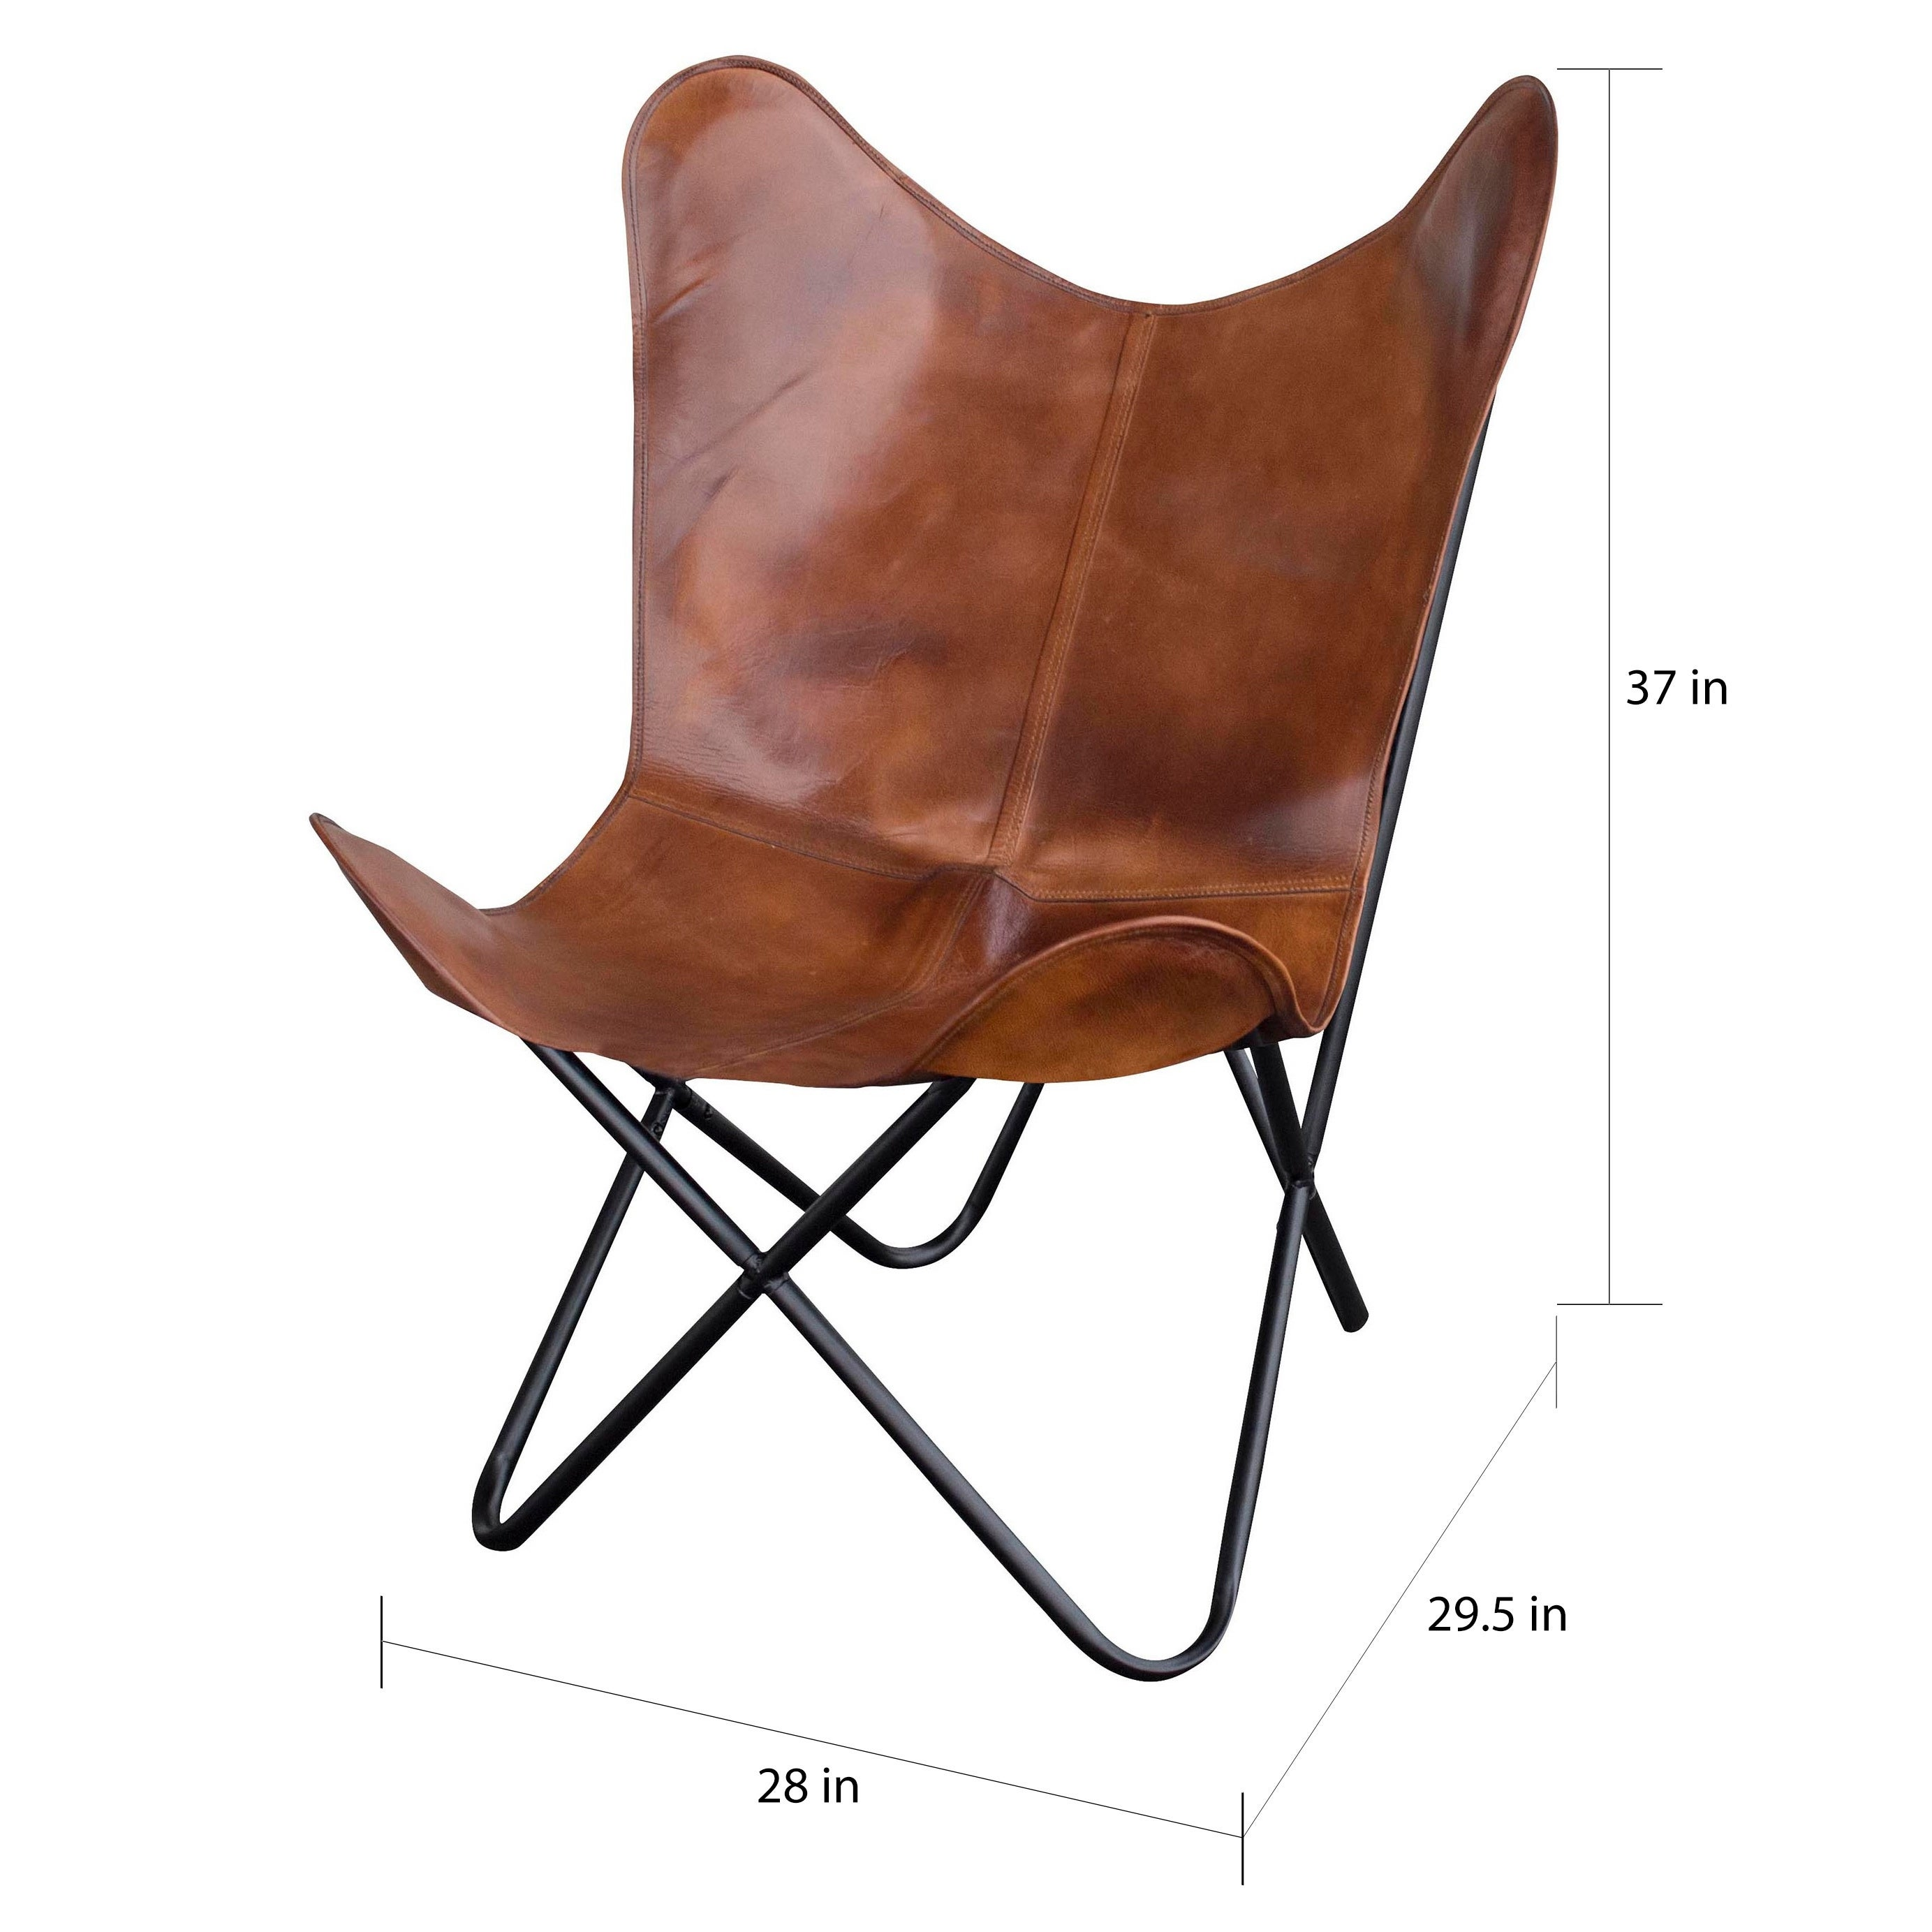 Merveilleux Shop Amerihome Leather Butterfly Chair In Natural Tan   Free Shipping Today    Overstock   21945027